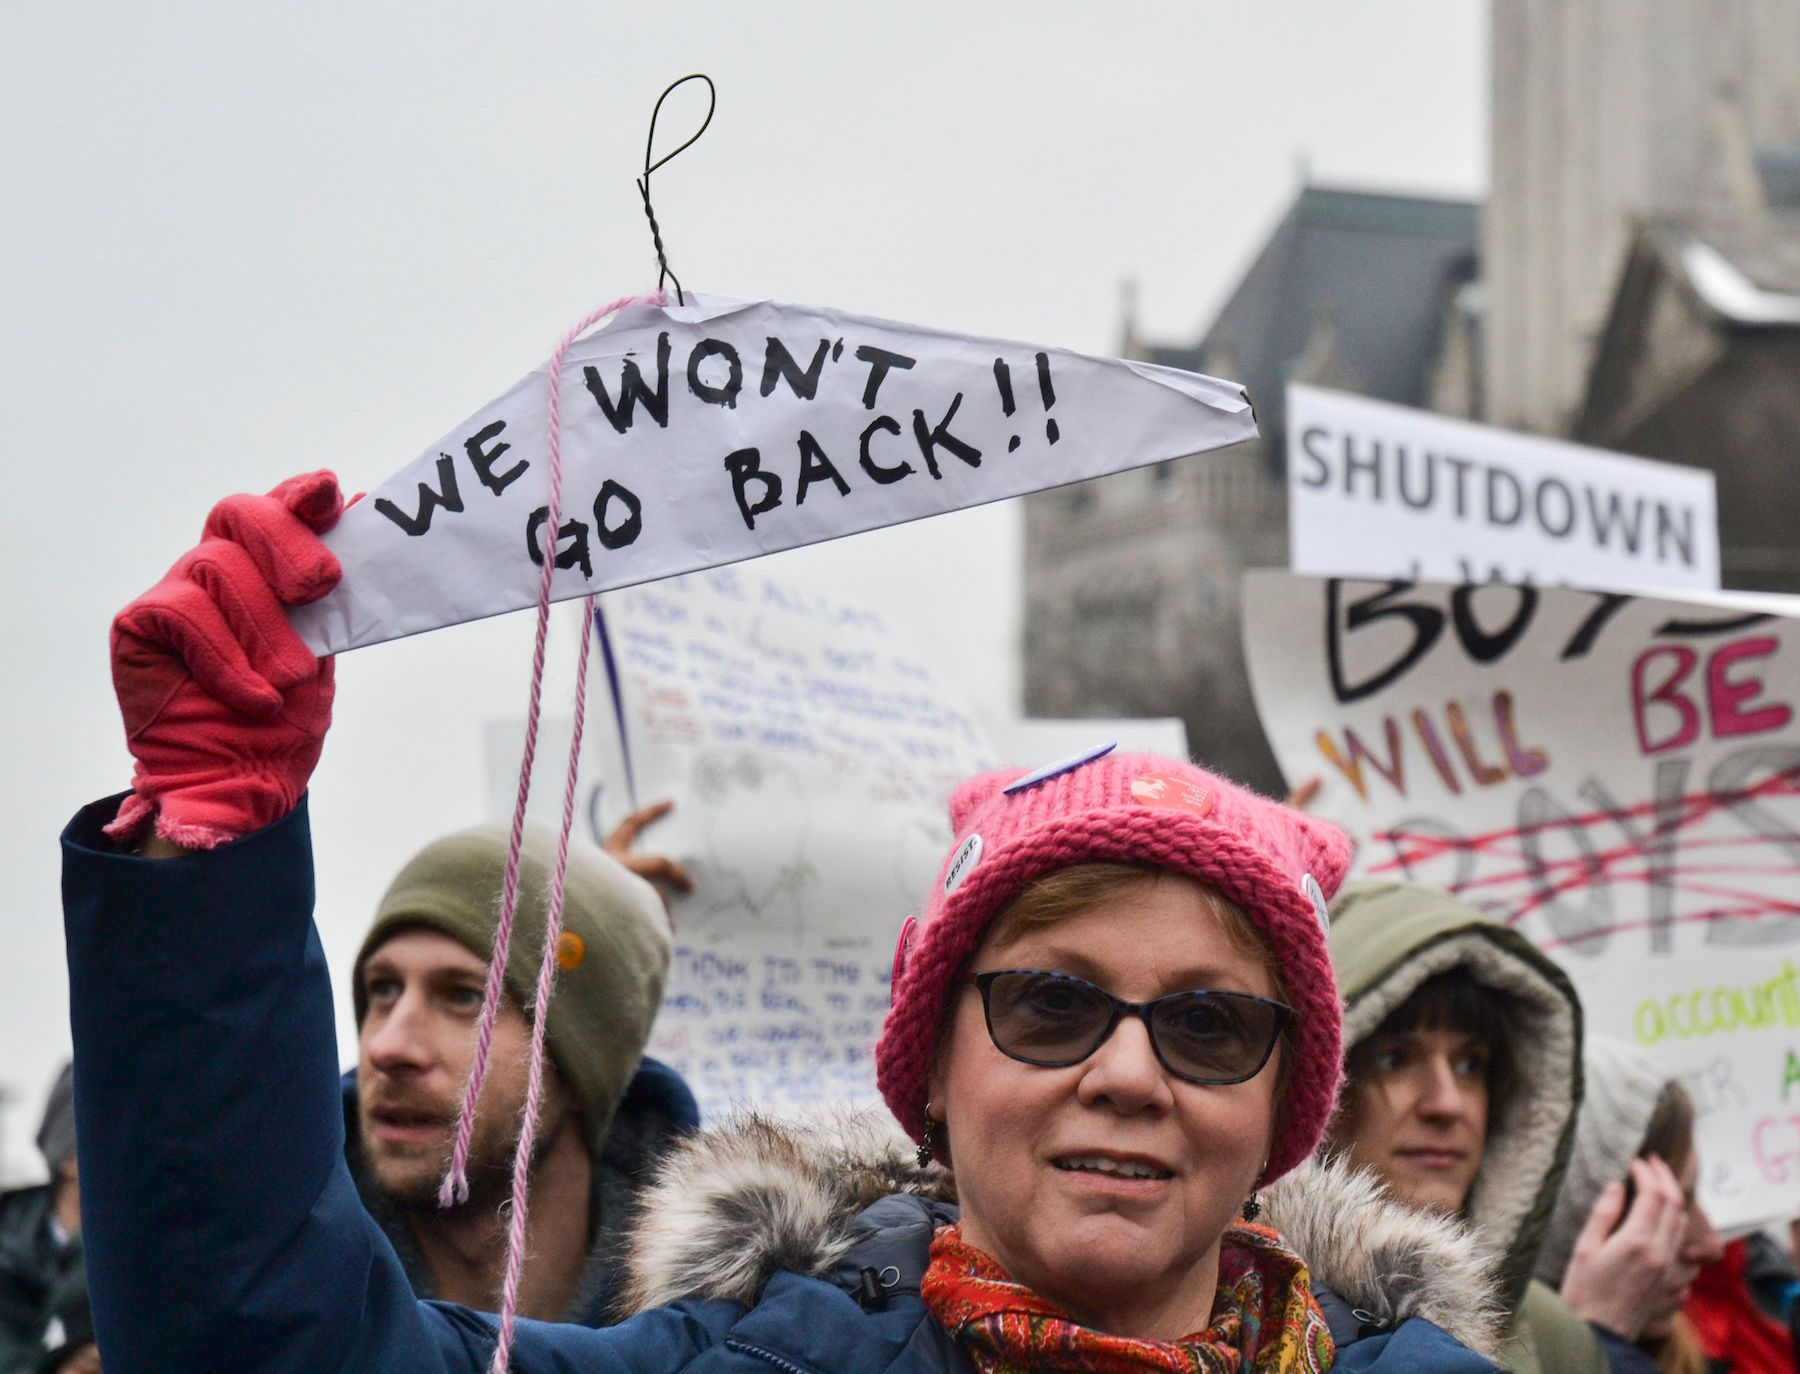 <div class='meta'><div class='origin-logo' data-origin='Creative Content'></div><span class='caption-text' data-credit='Alex Robinson/AFP/Getty Images'>Protesters display their signs in front of the Trump Tower during the Women's March in Washington, DC January 19, 2019.</span></div>